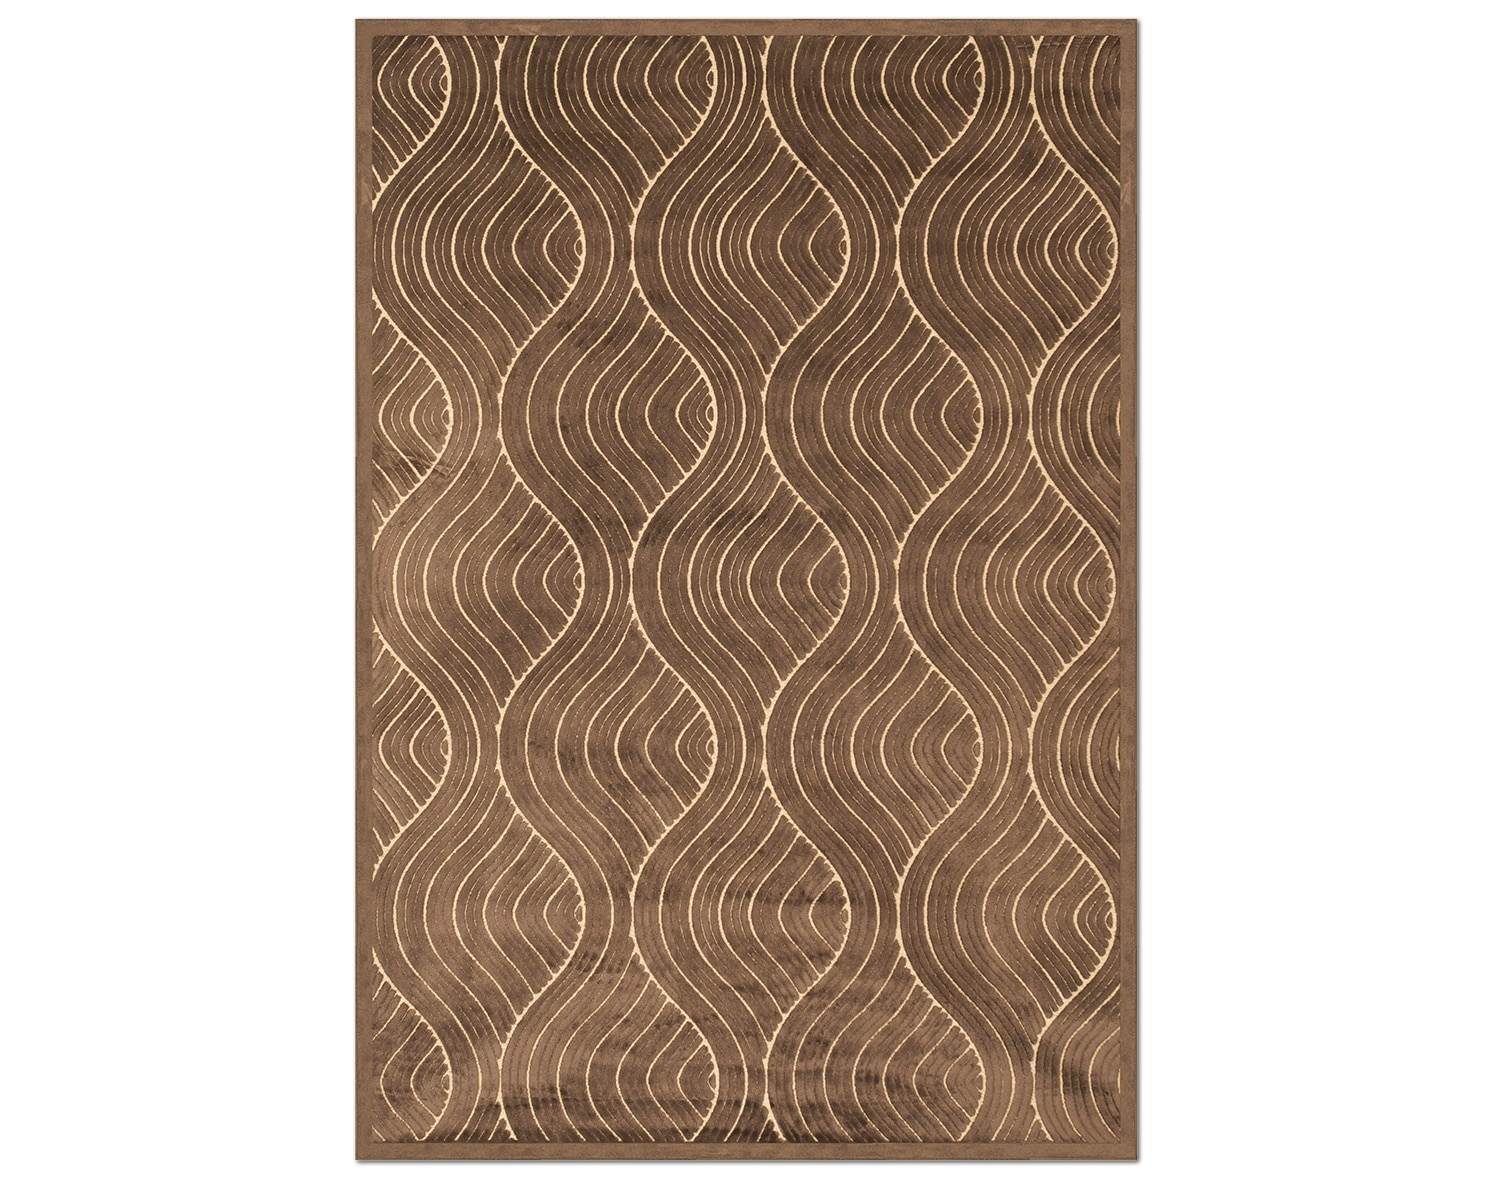 The Napa Bale Collection - Dark Brown and Beige